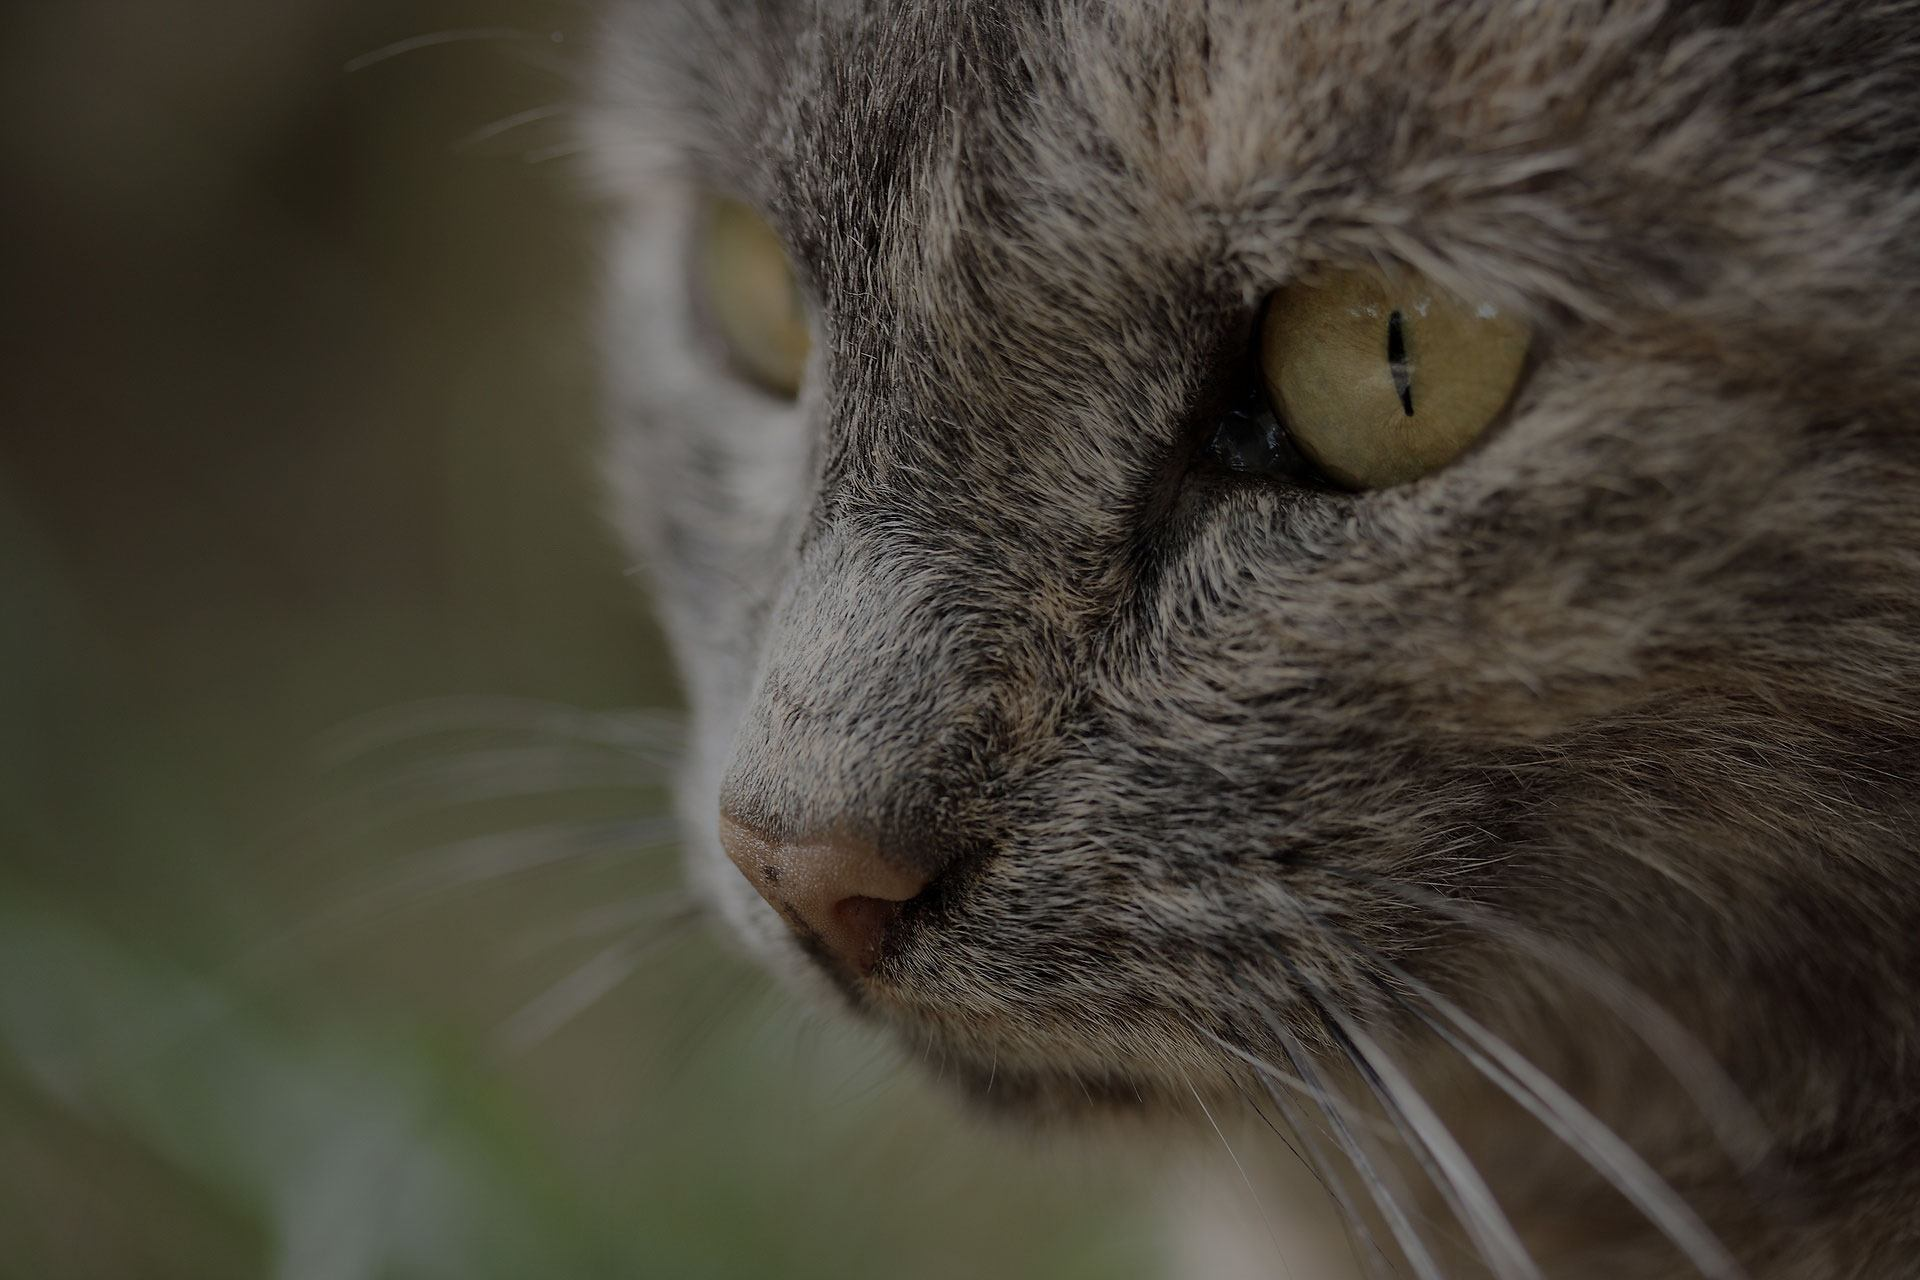 Close-up of cat's face with big green eyes